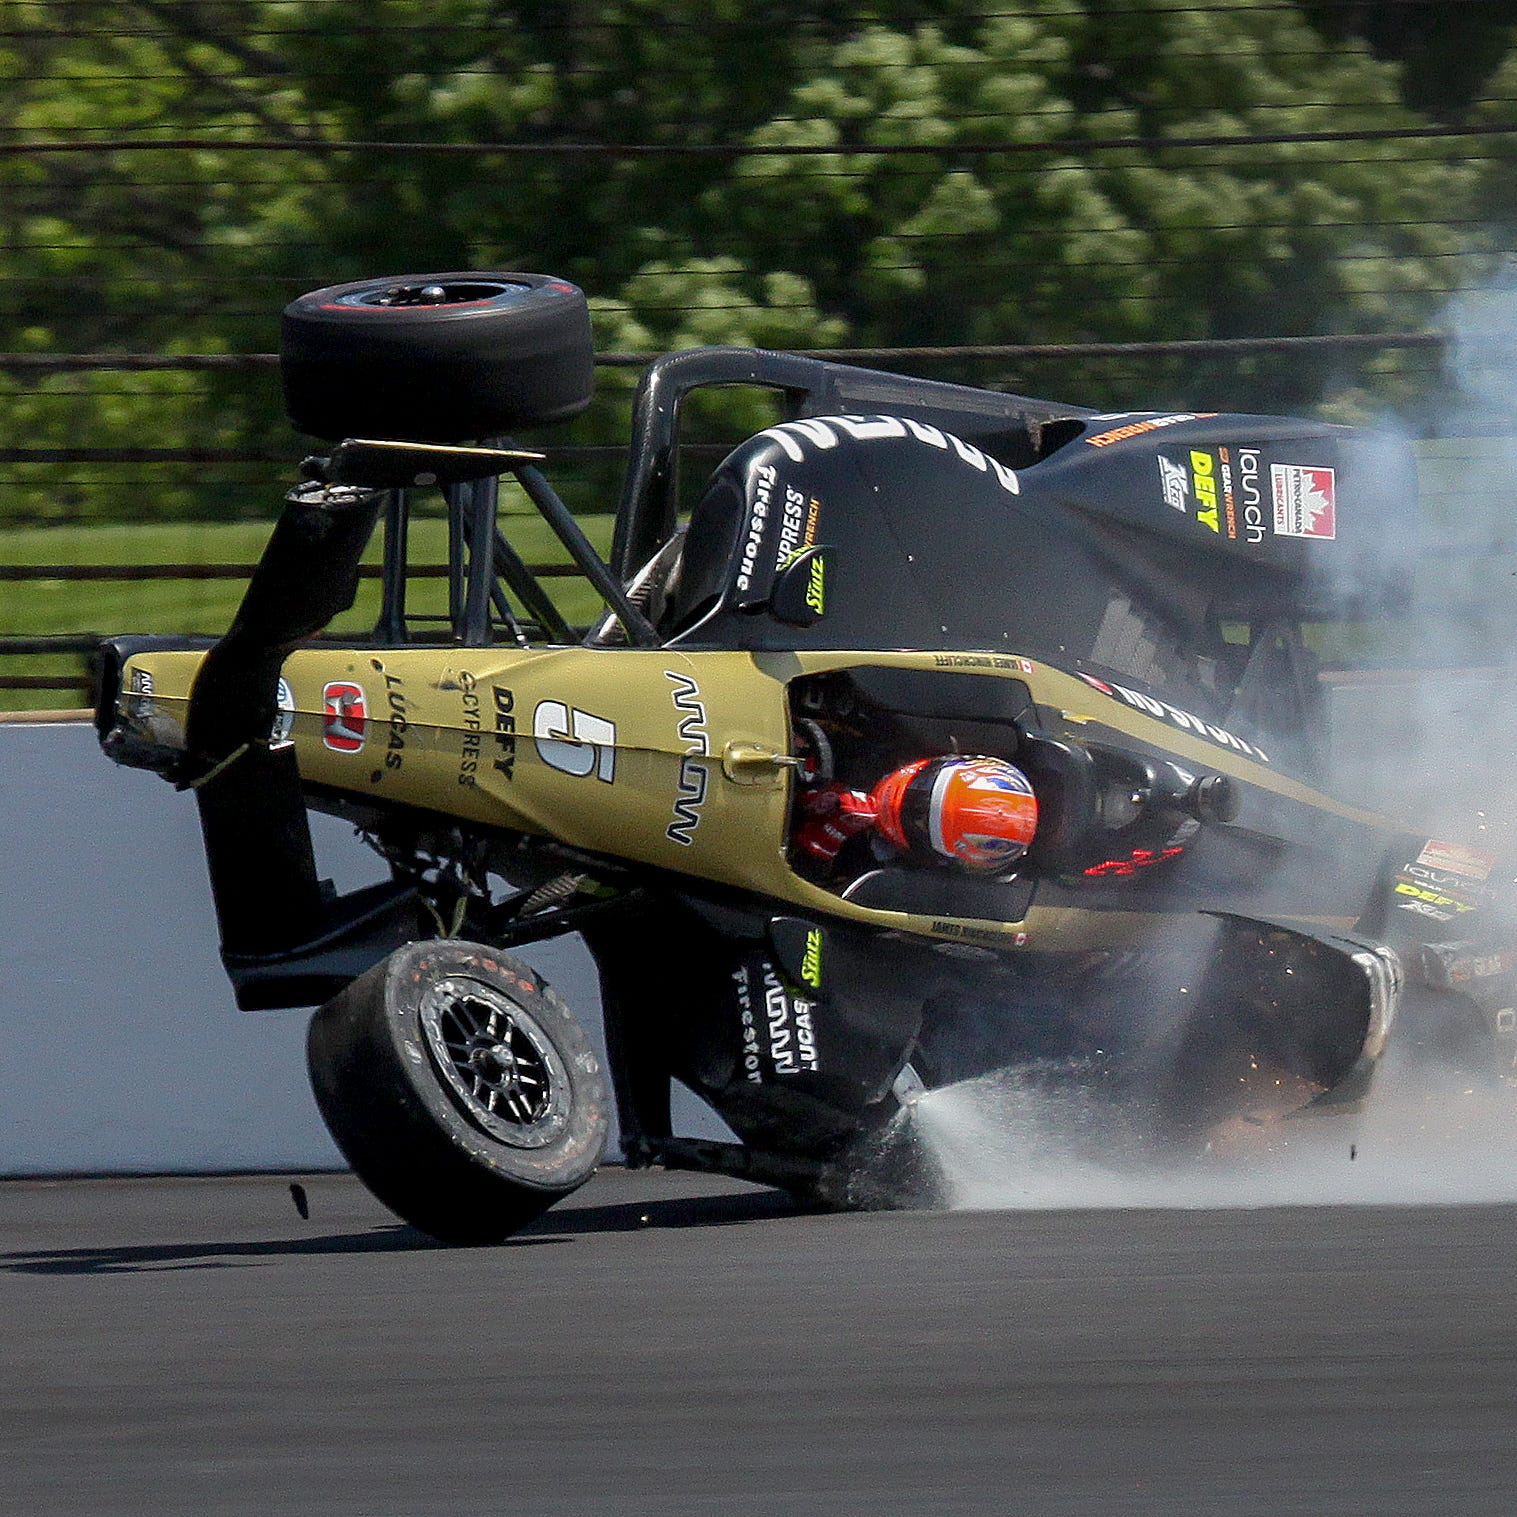 Indy 500 qualifying: James Hinchcliffe is OK after crash